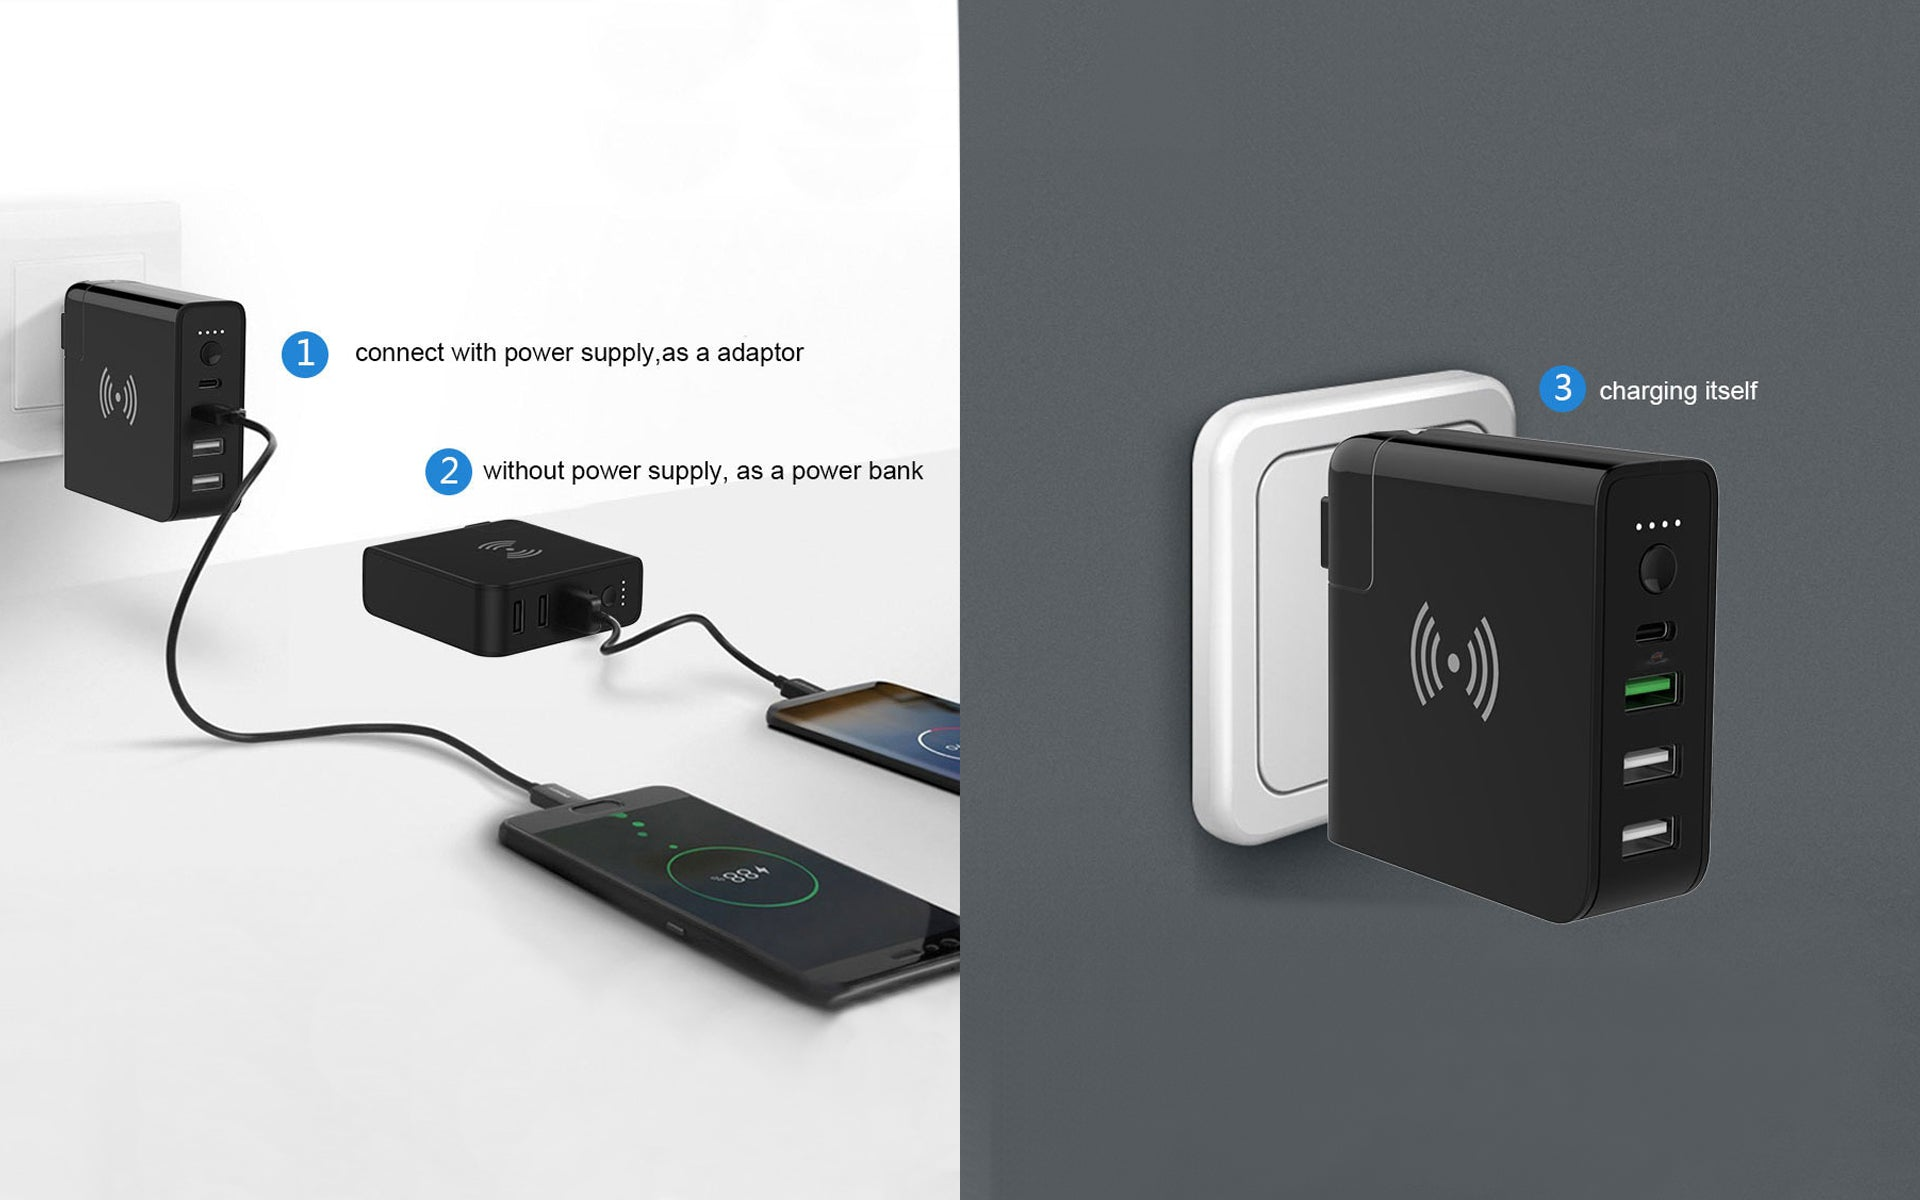 Loowoko-Wireless-Wallcharger-LWC-WP10_3